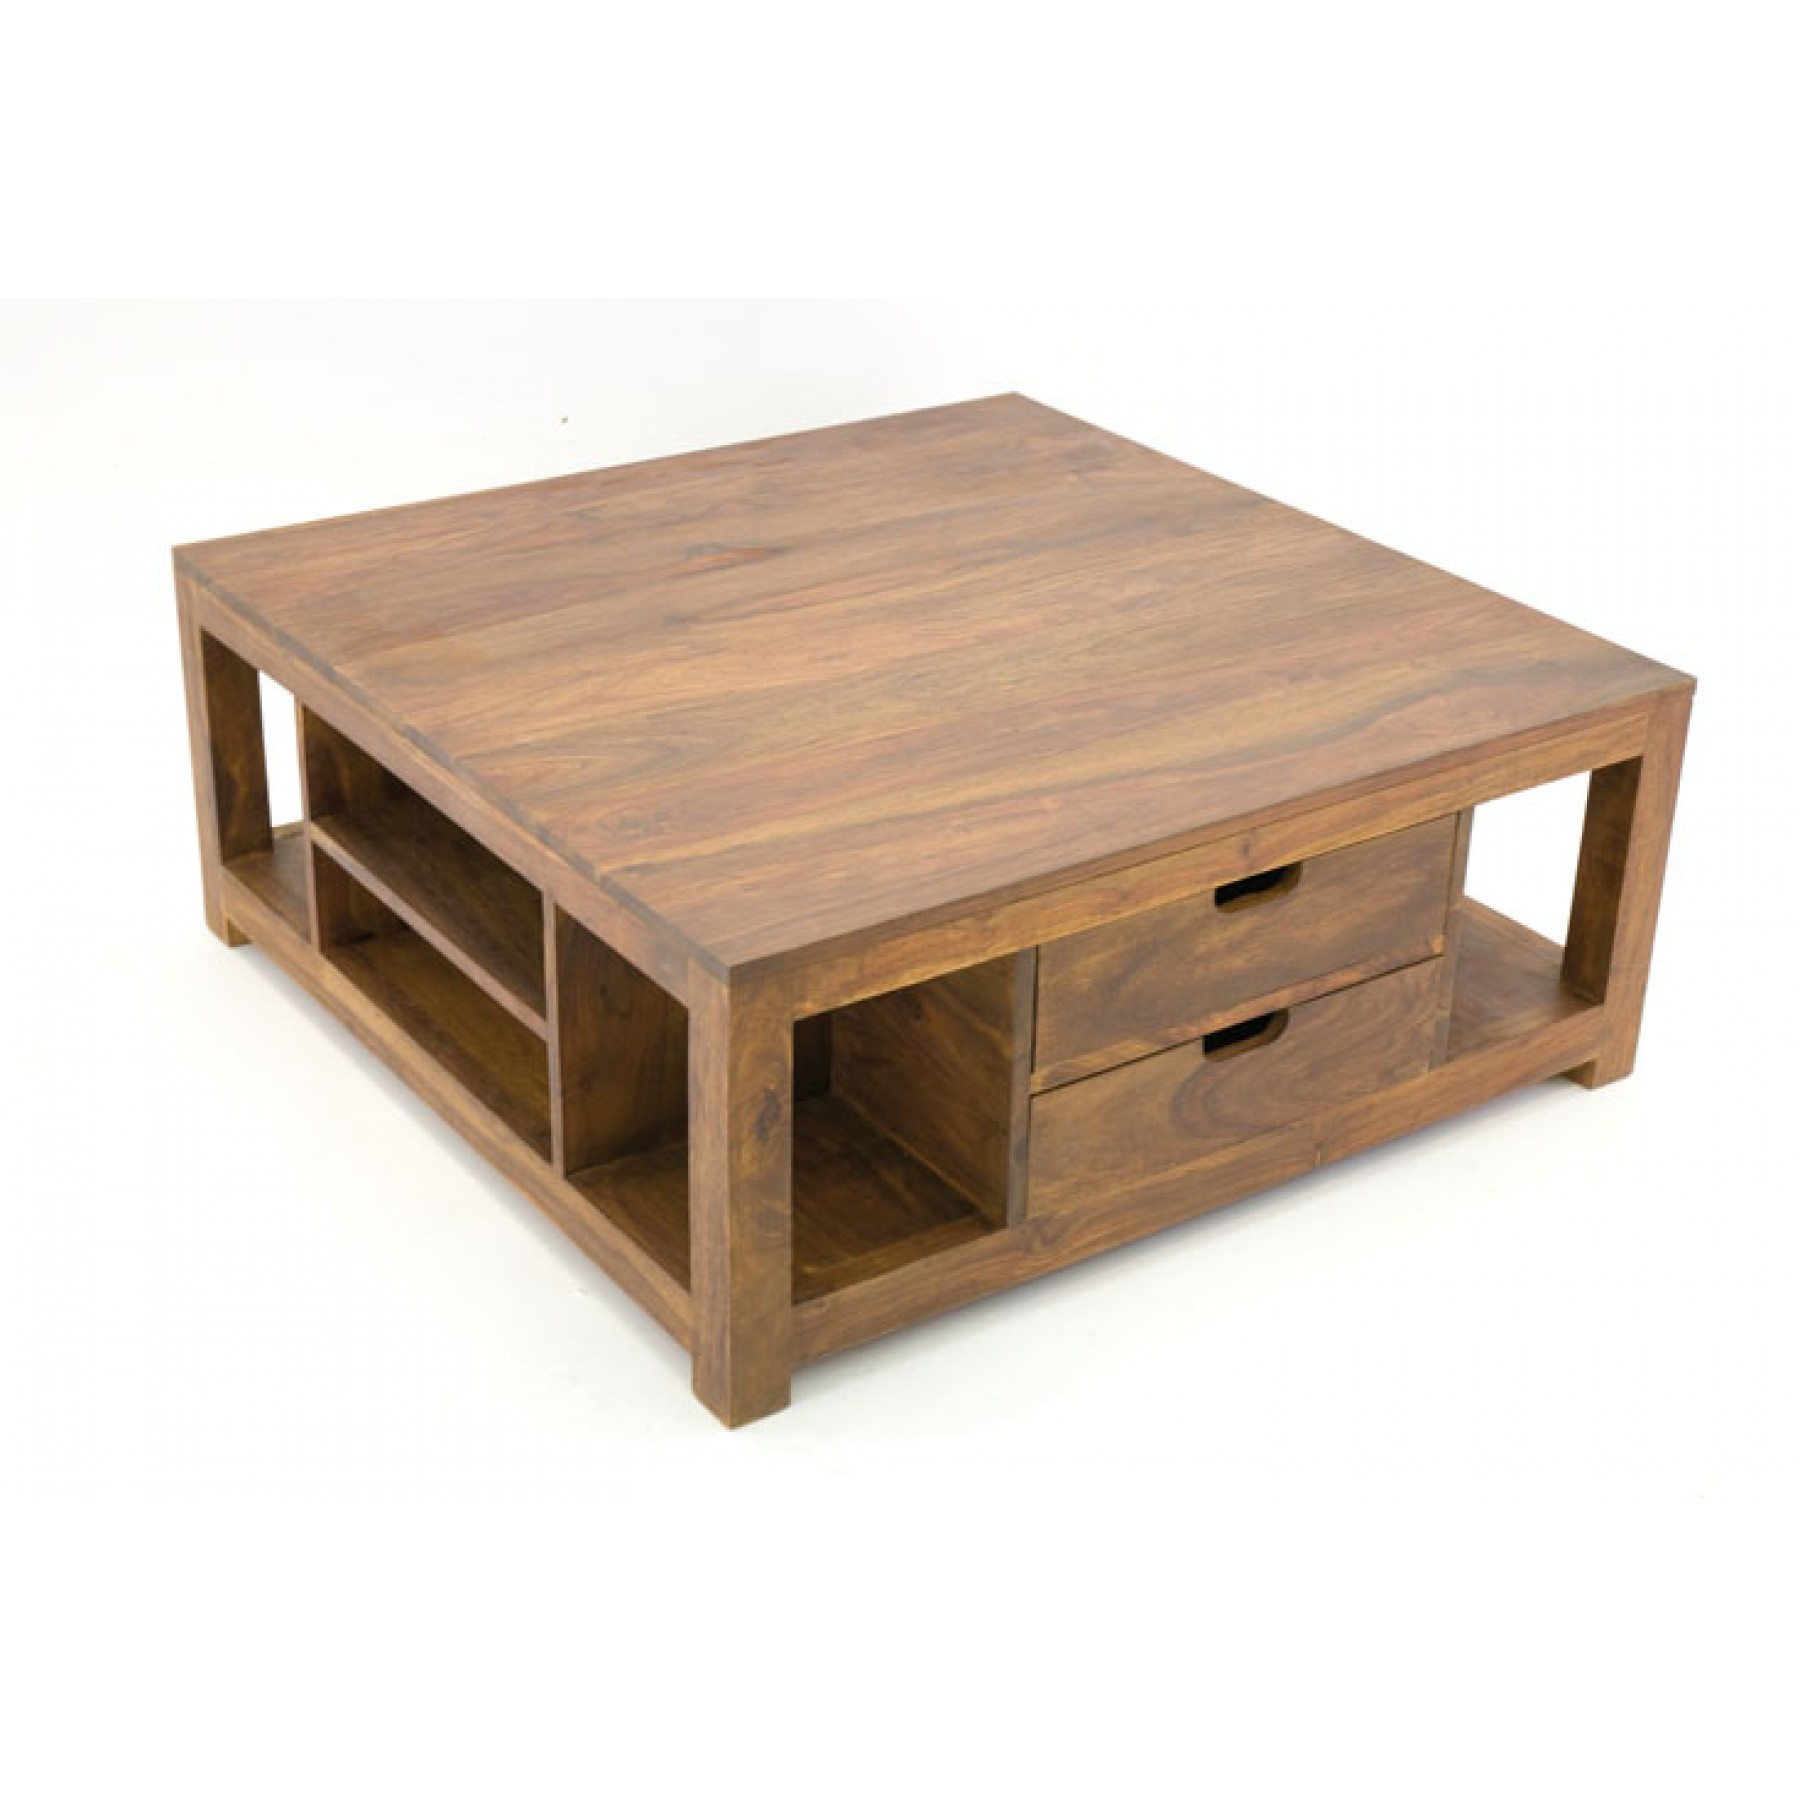 Recherche Table De Salon Table Basse Carrée Multiples Niches 2 Tiroirs